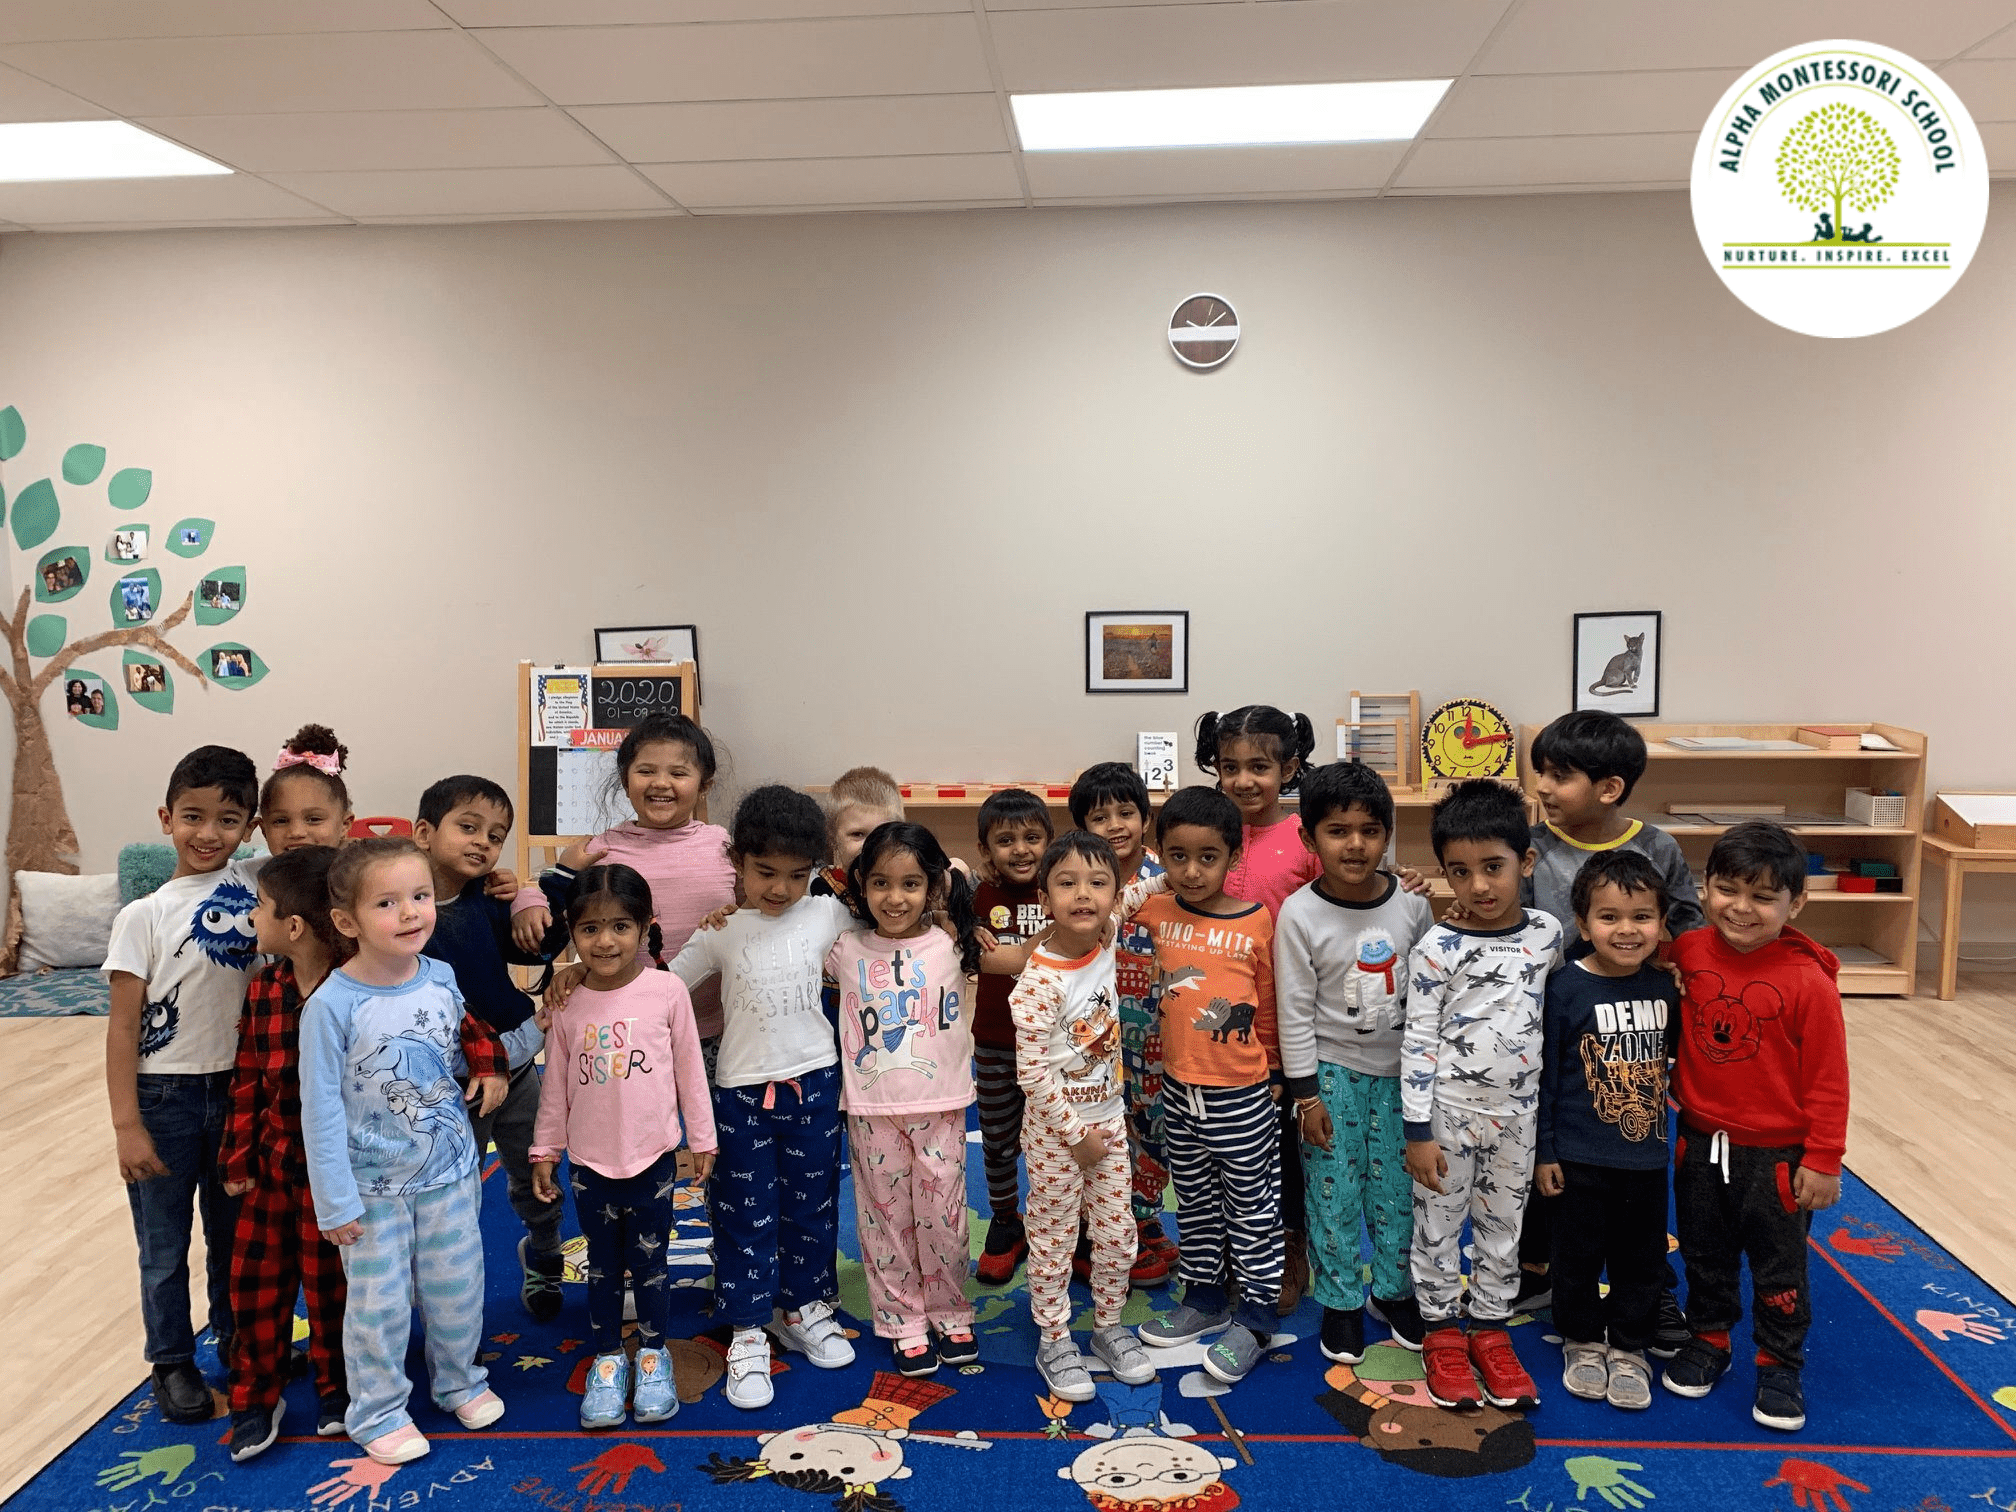 Pajama Day Celebration